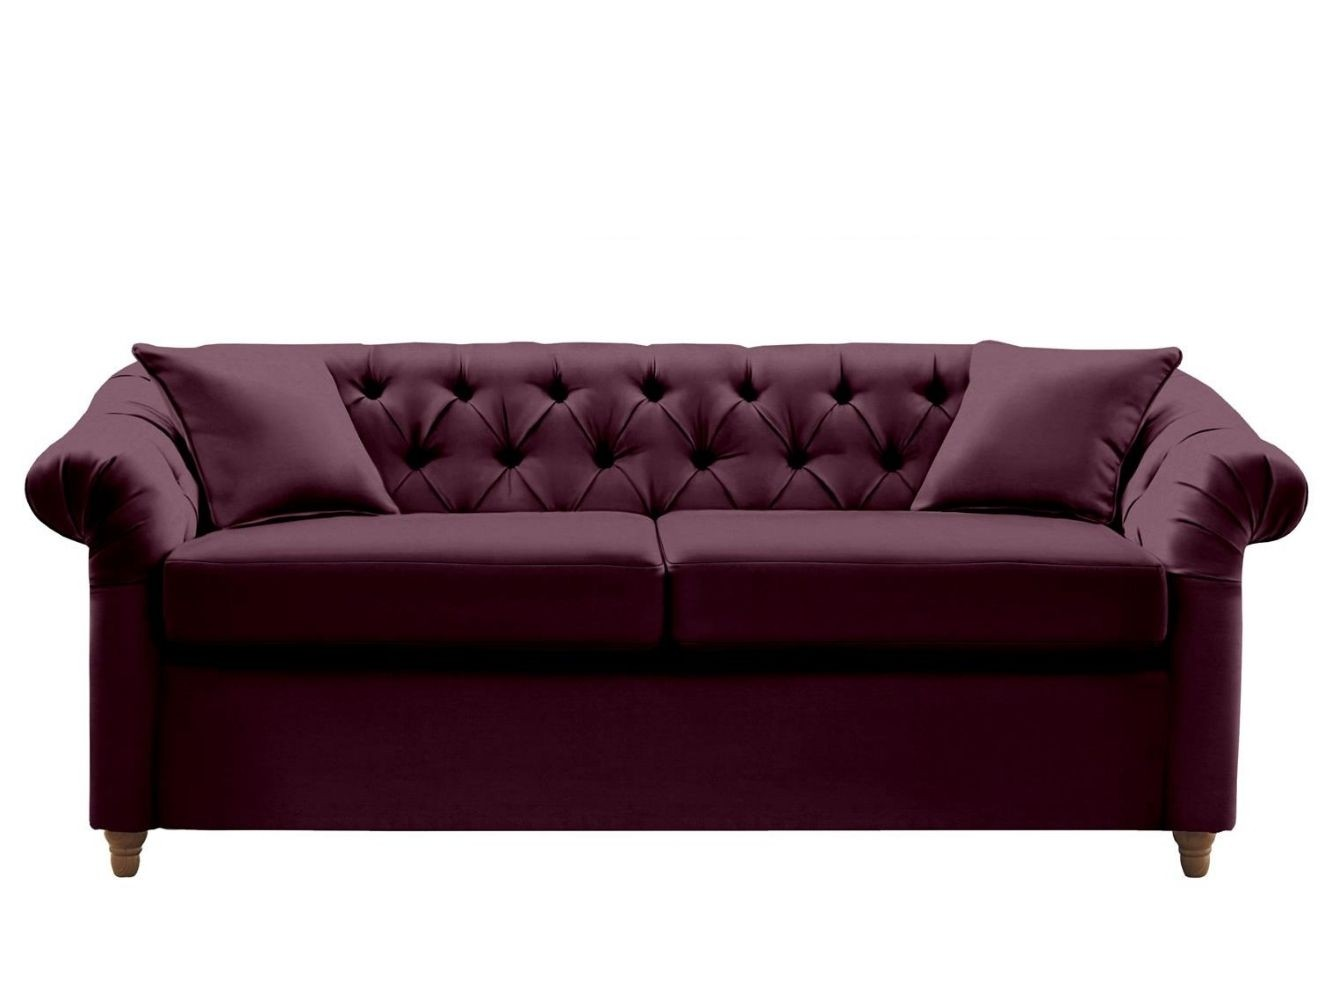 This is how I look in House Velvet Brinjal (Discontinued Fabric) with reflex foam seat cushions